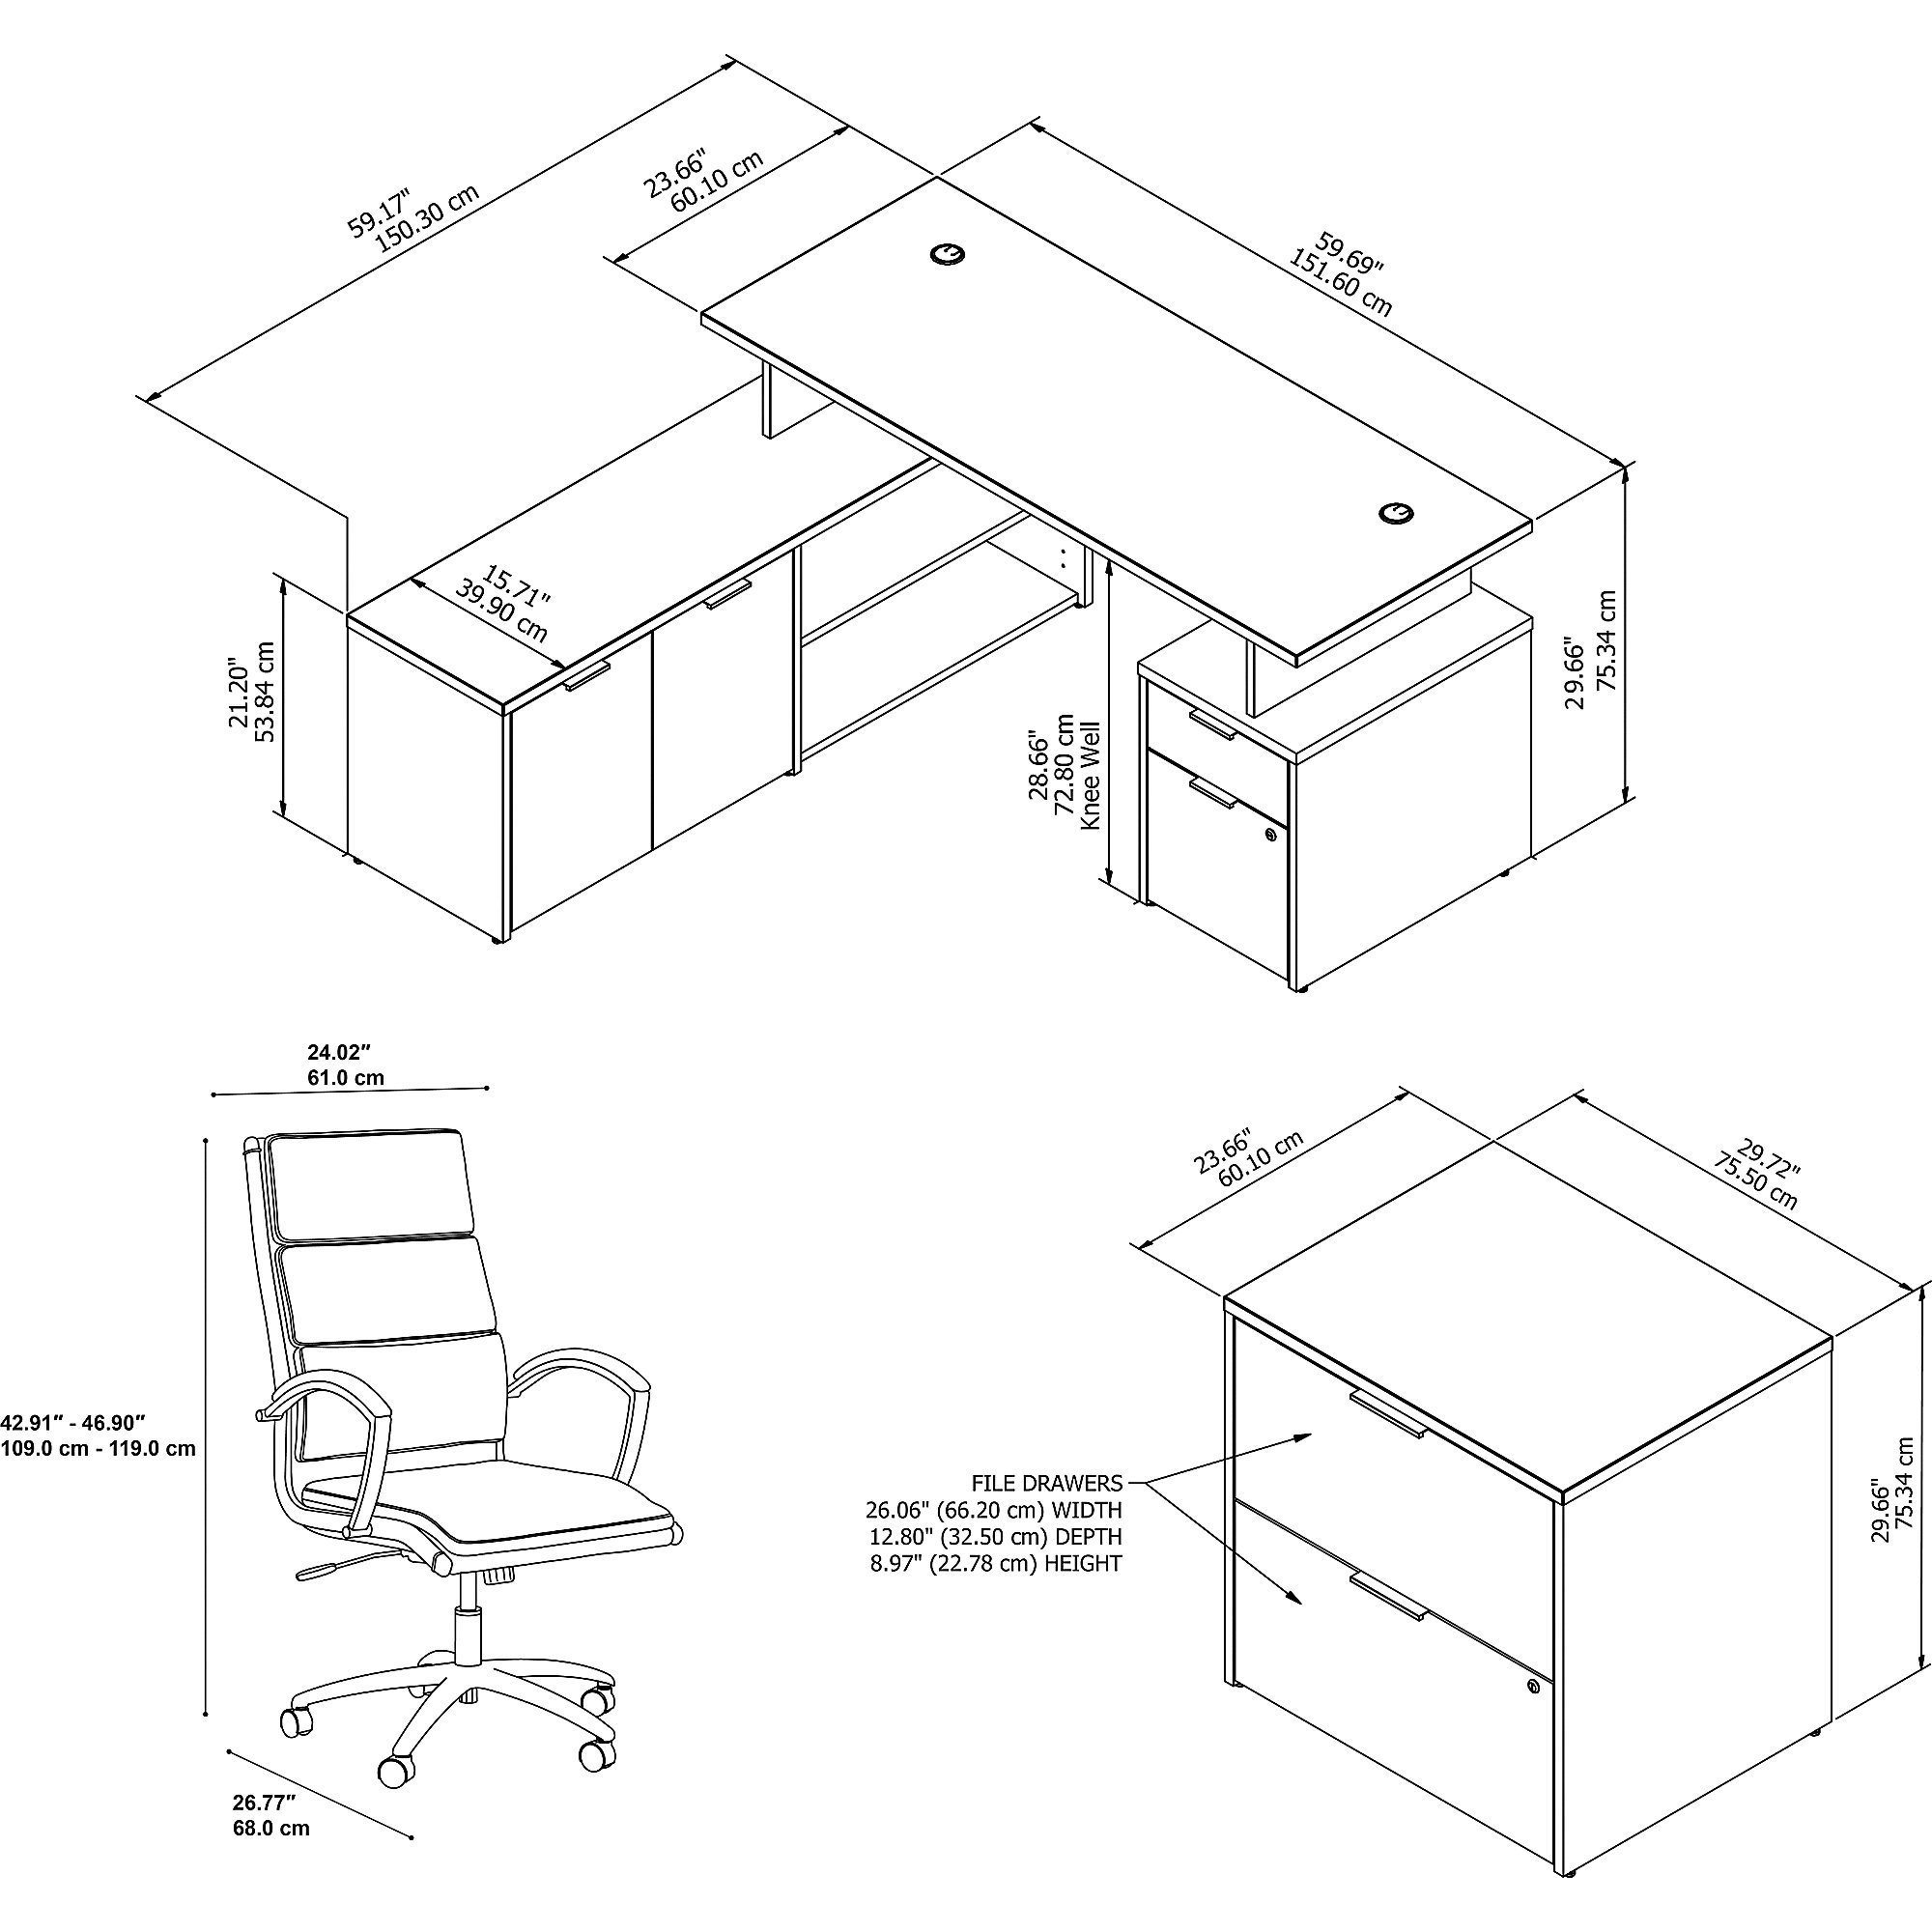 jamestown complete desk dimensions line drawing - jtn026